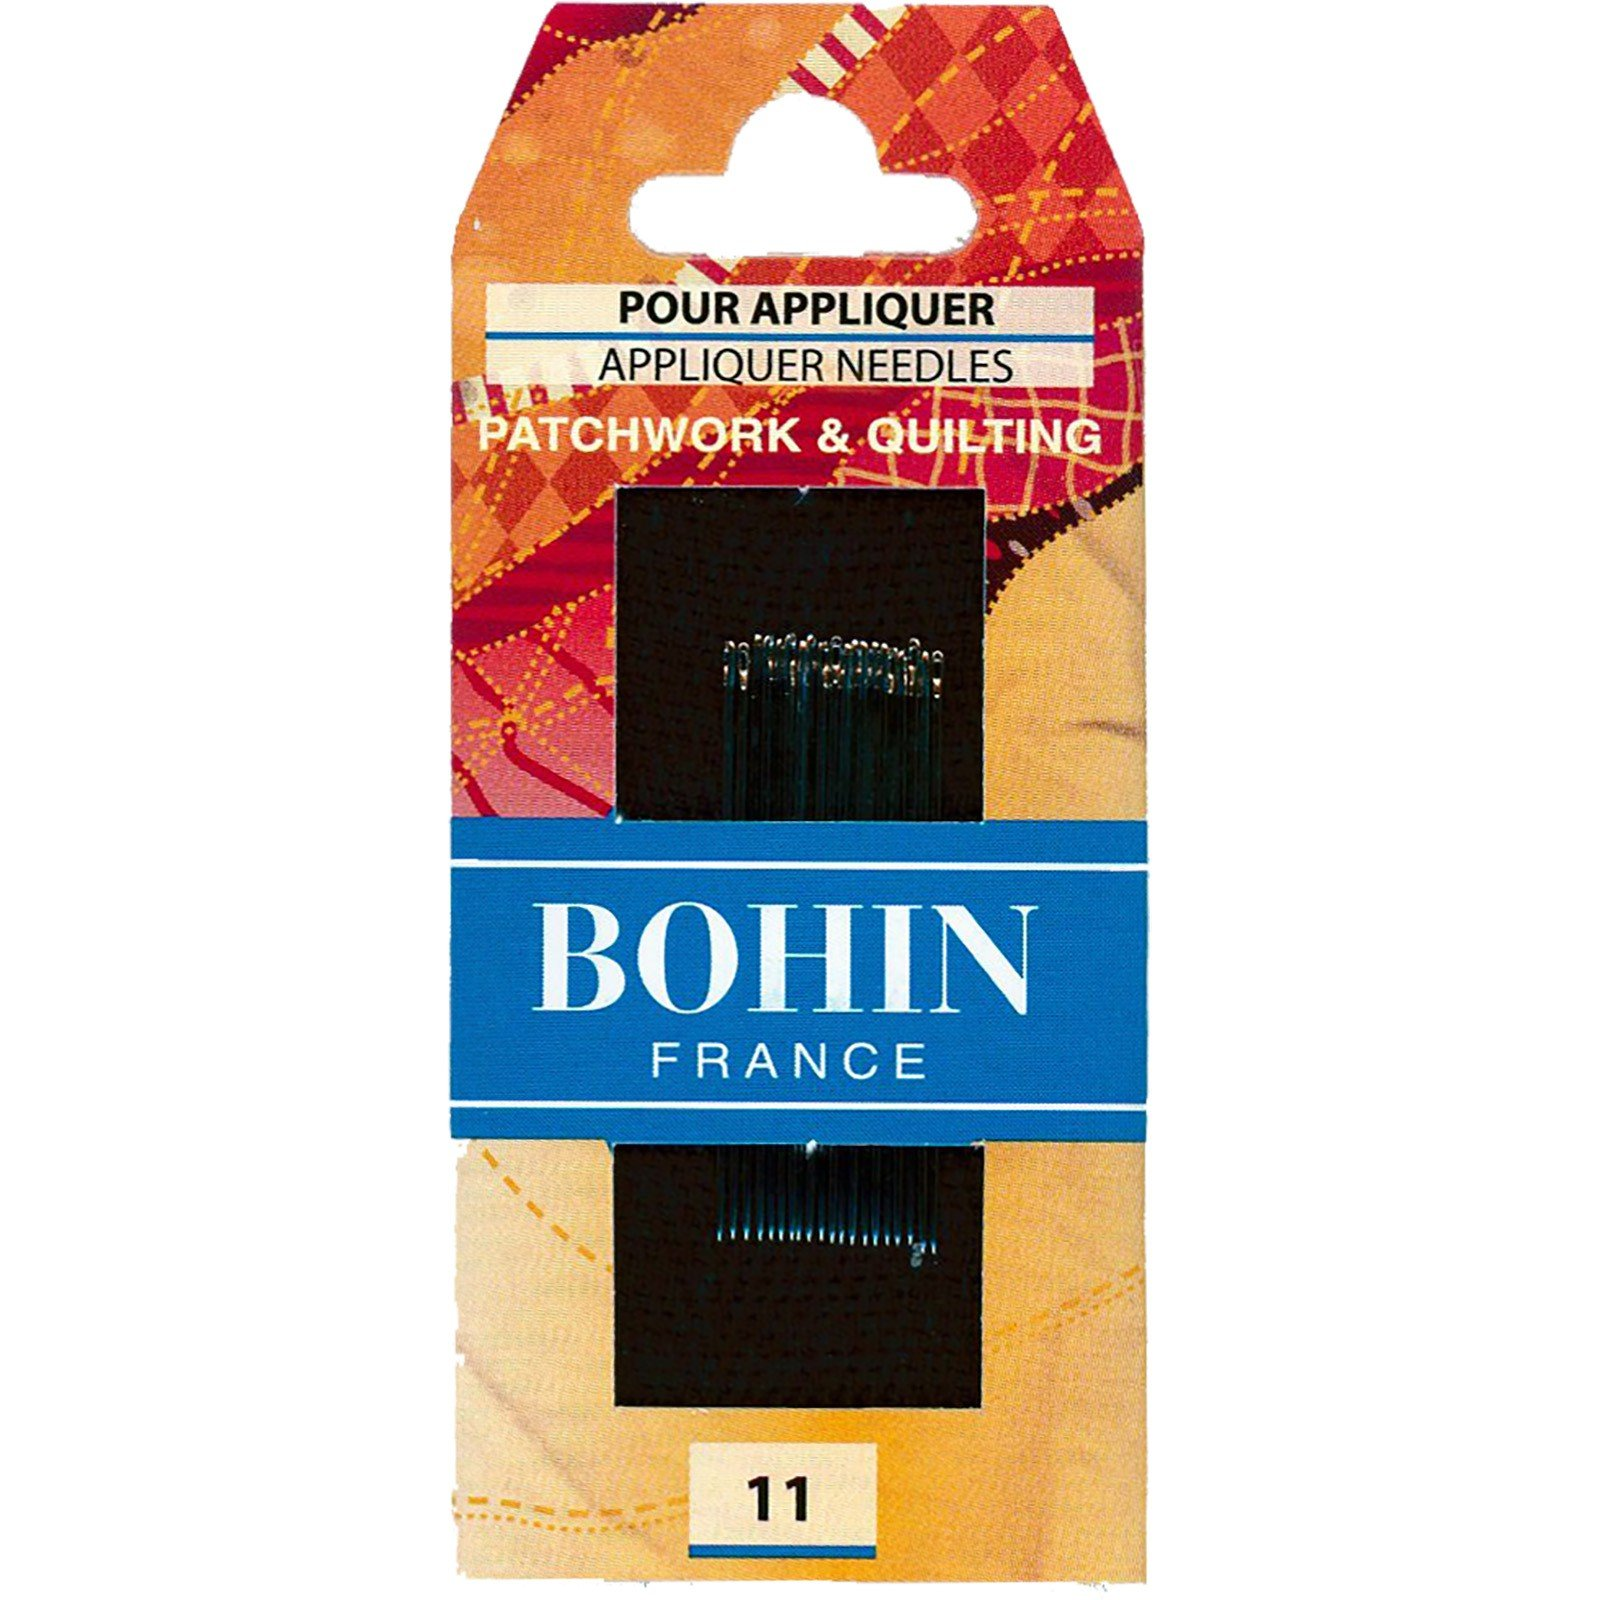 Bohin Applique Sharps 11